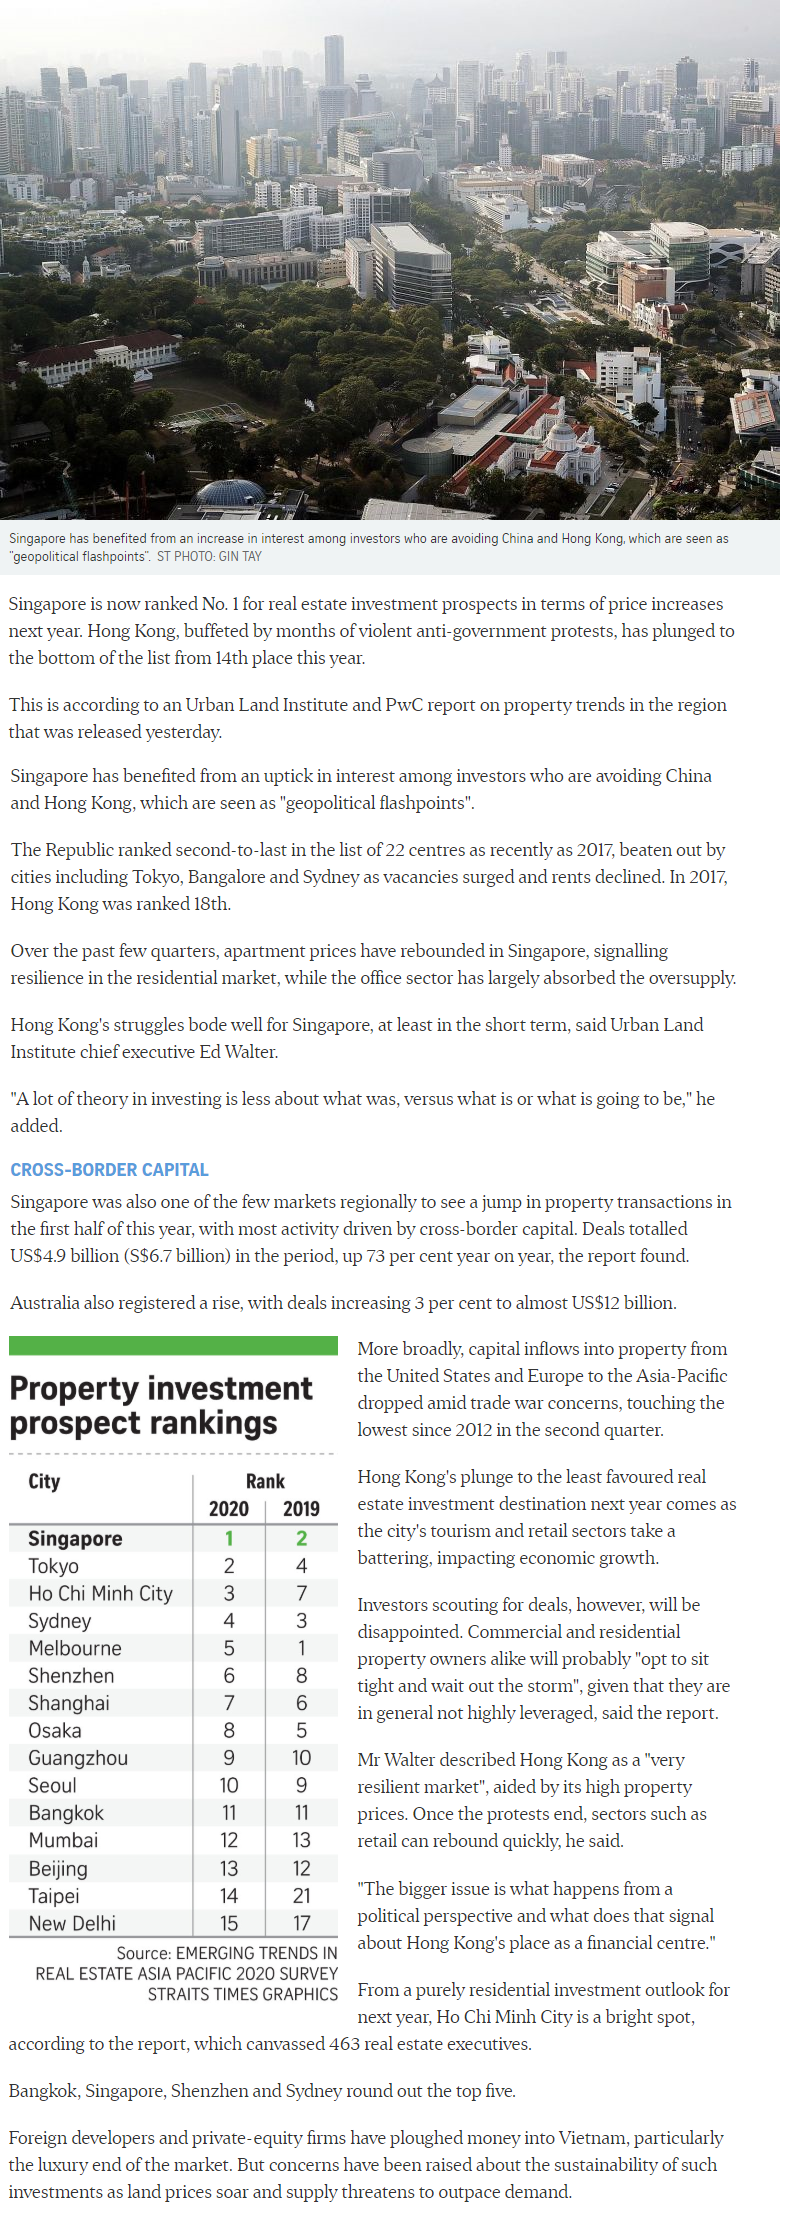 La Mariposa - Singapore Tops Region For Property Investment Prospects